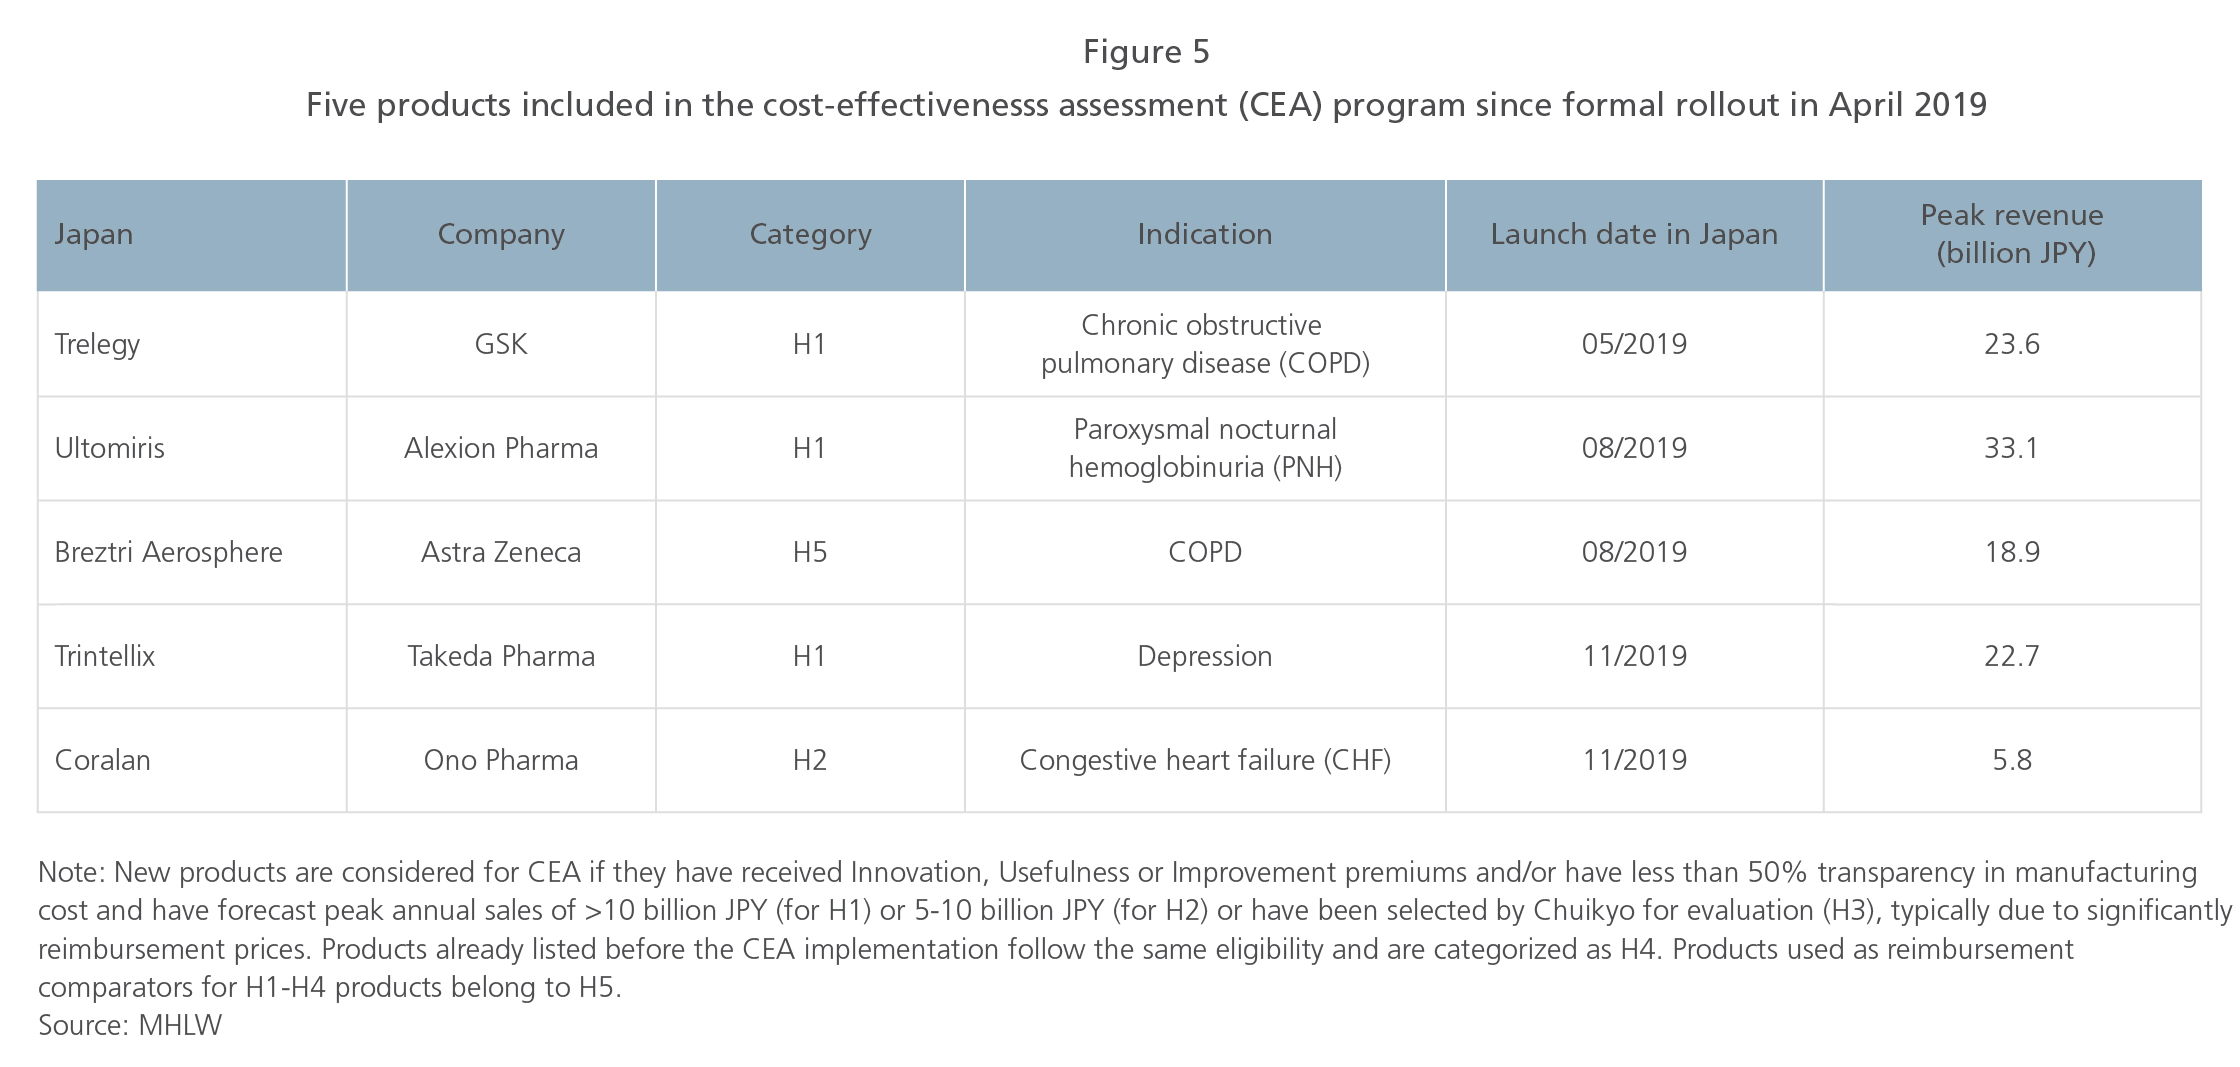 5 products included in cost-effectiveness-assessment program since rollout in April 2019